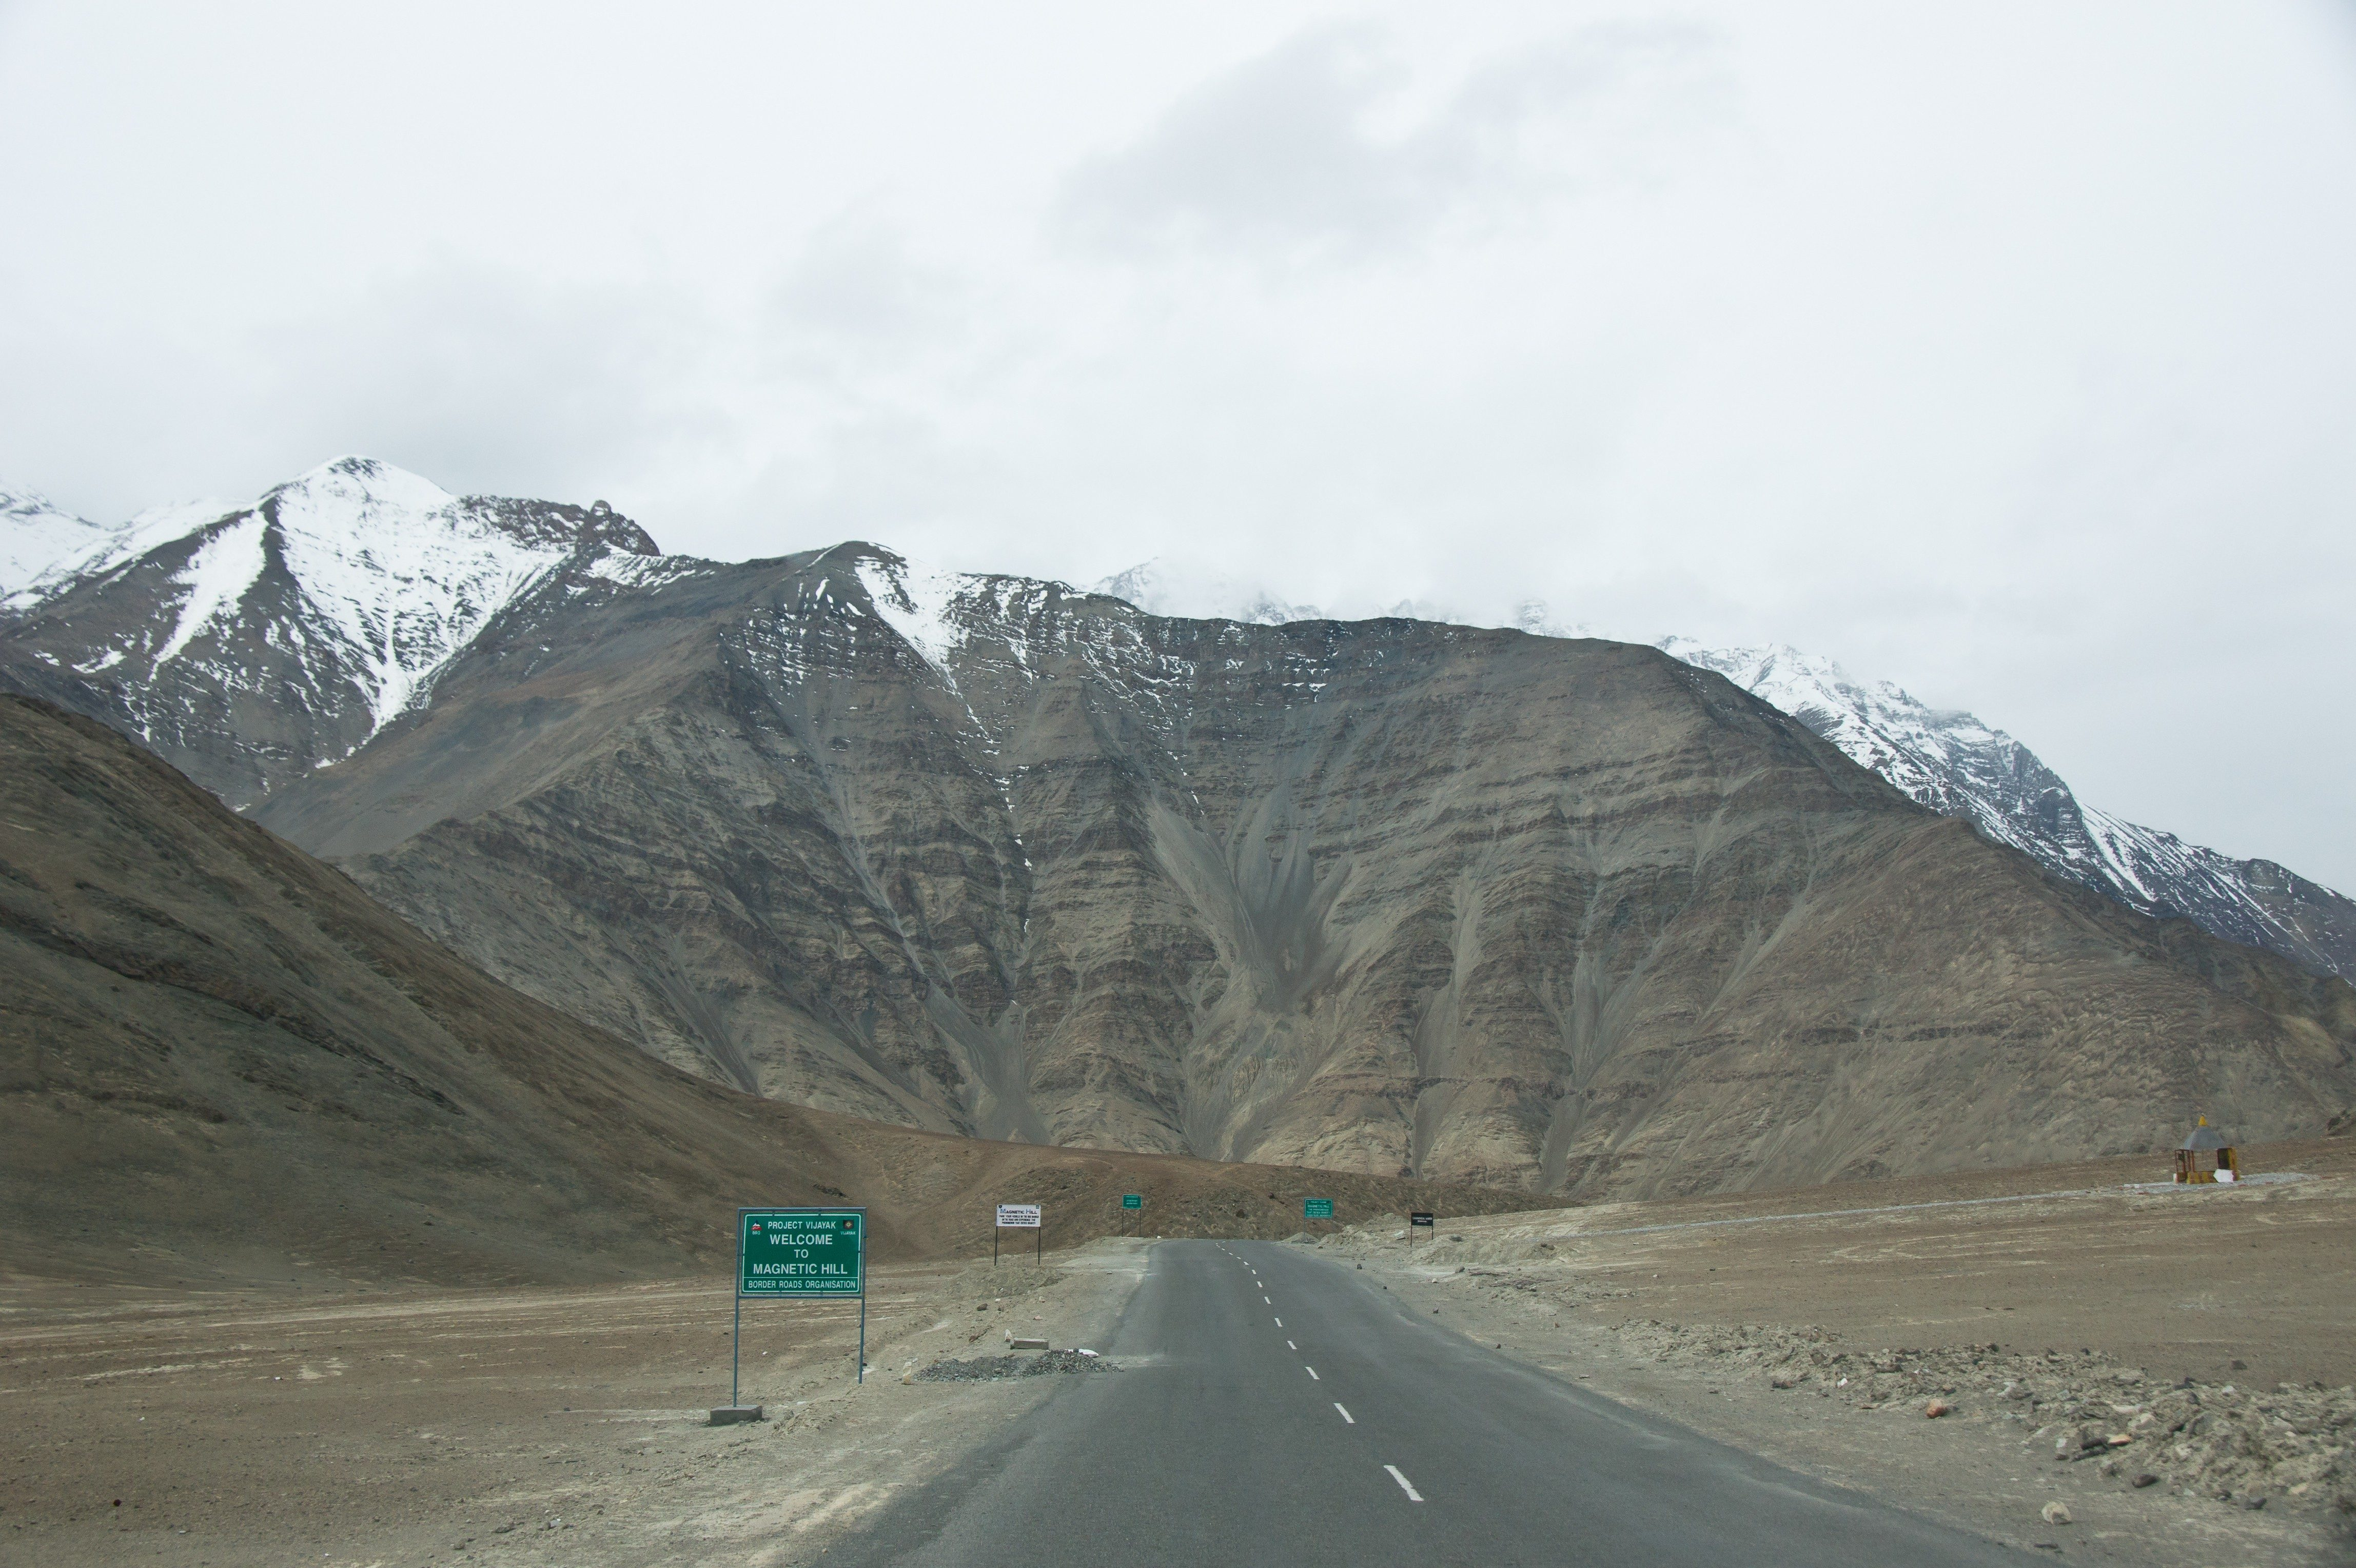 Magnetic Hill is a gravity hill located near Leh in Ladakh, India